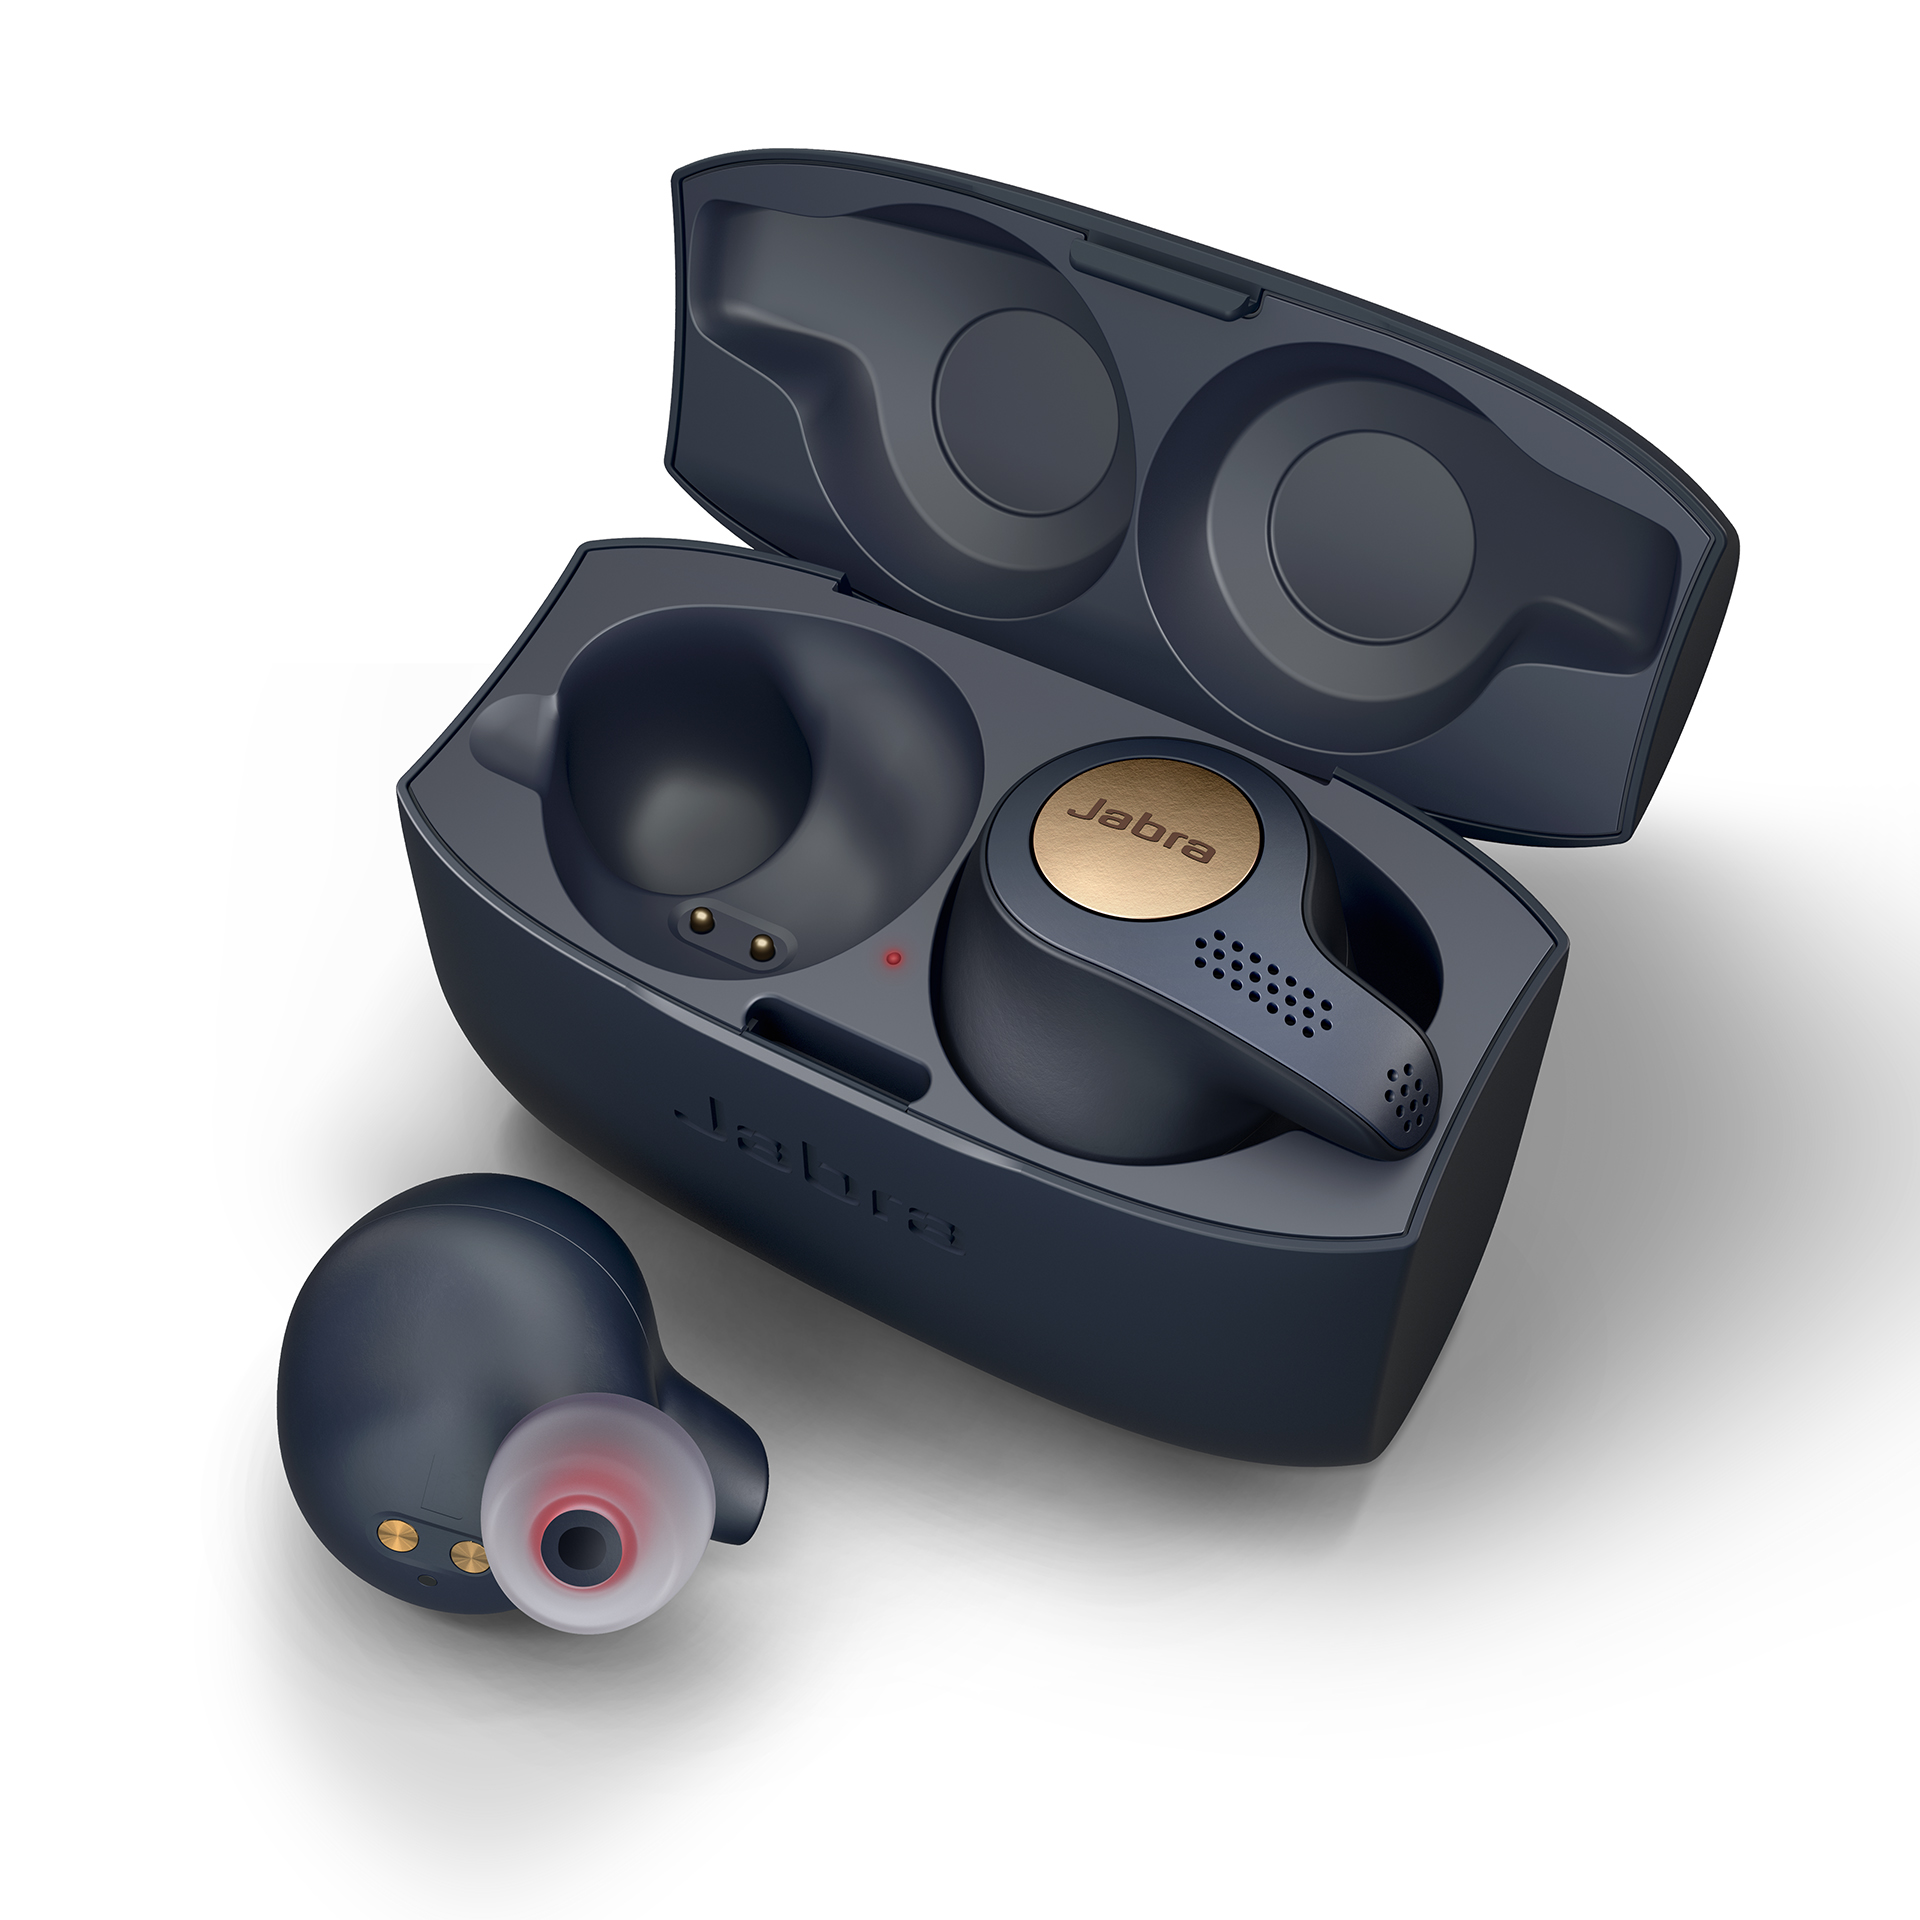 Jabra-Elite-Active-65t-True-Wireless-Earbuds-Manufacturer-Refurbished thumbnail 13